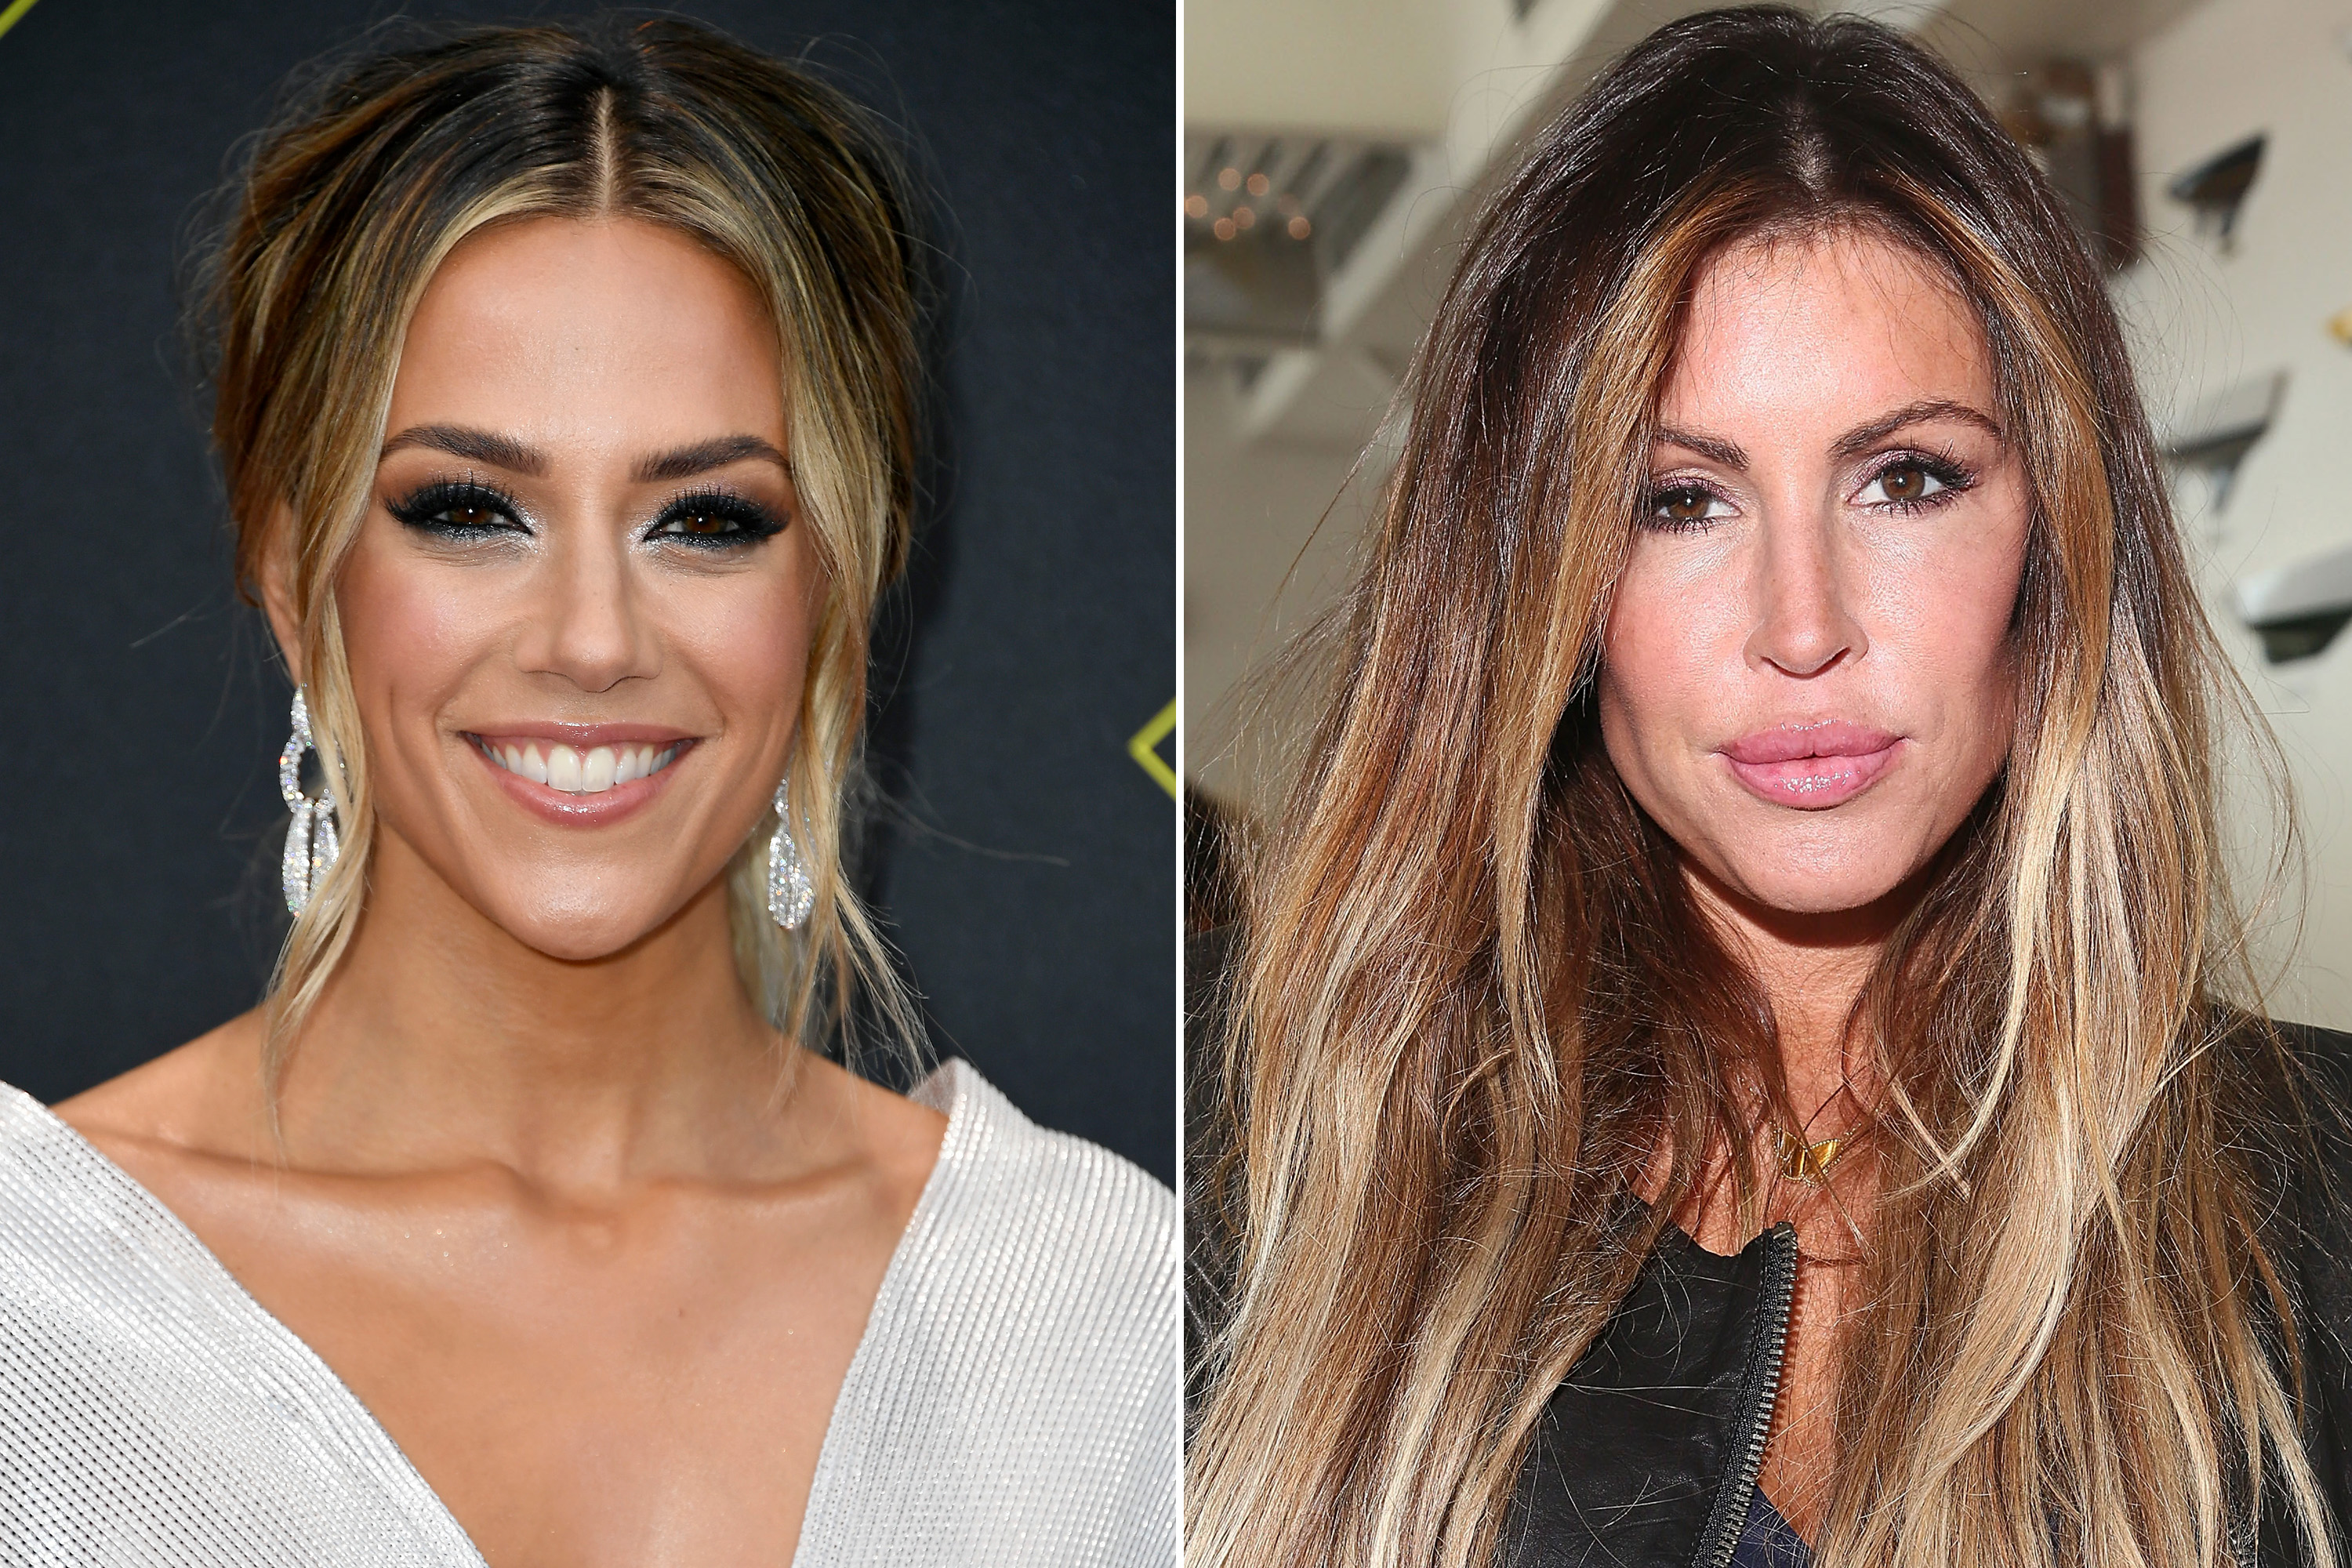 Jana Kramer apologizes to Rachel Uchitel for saying she hates her